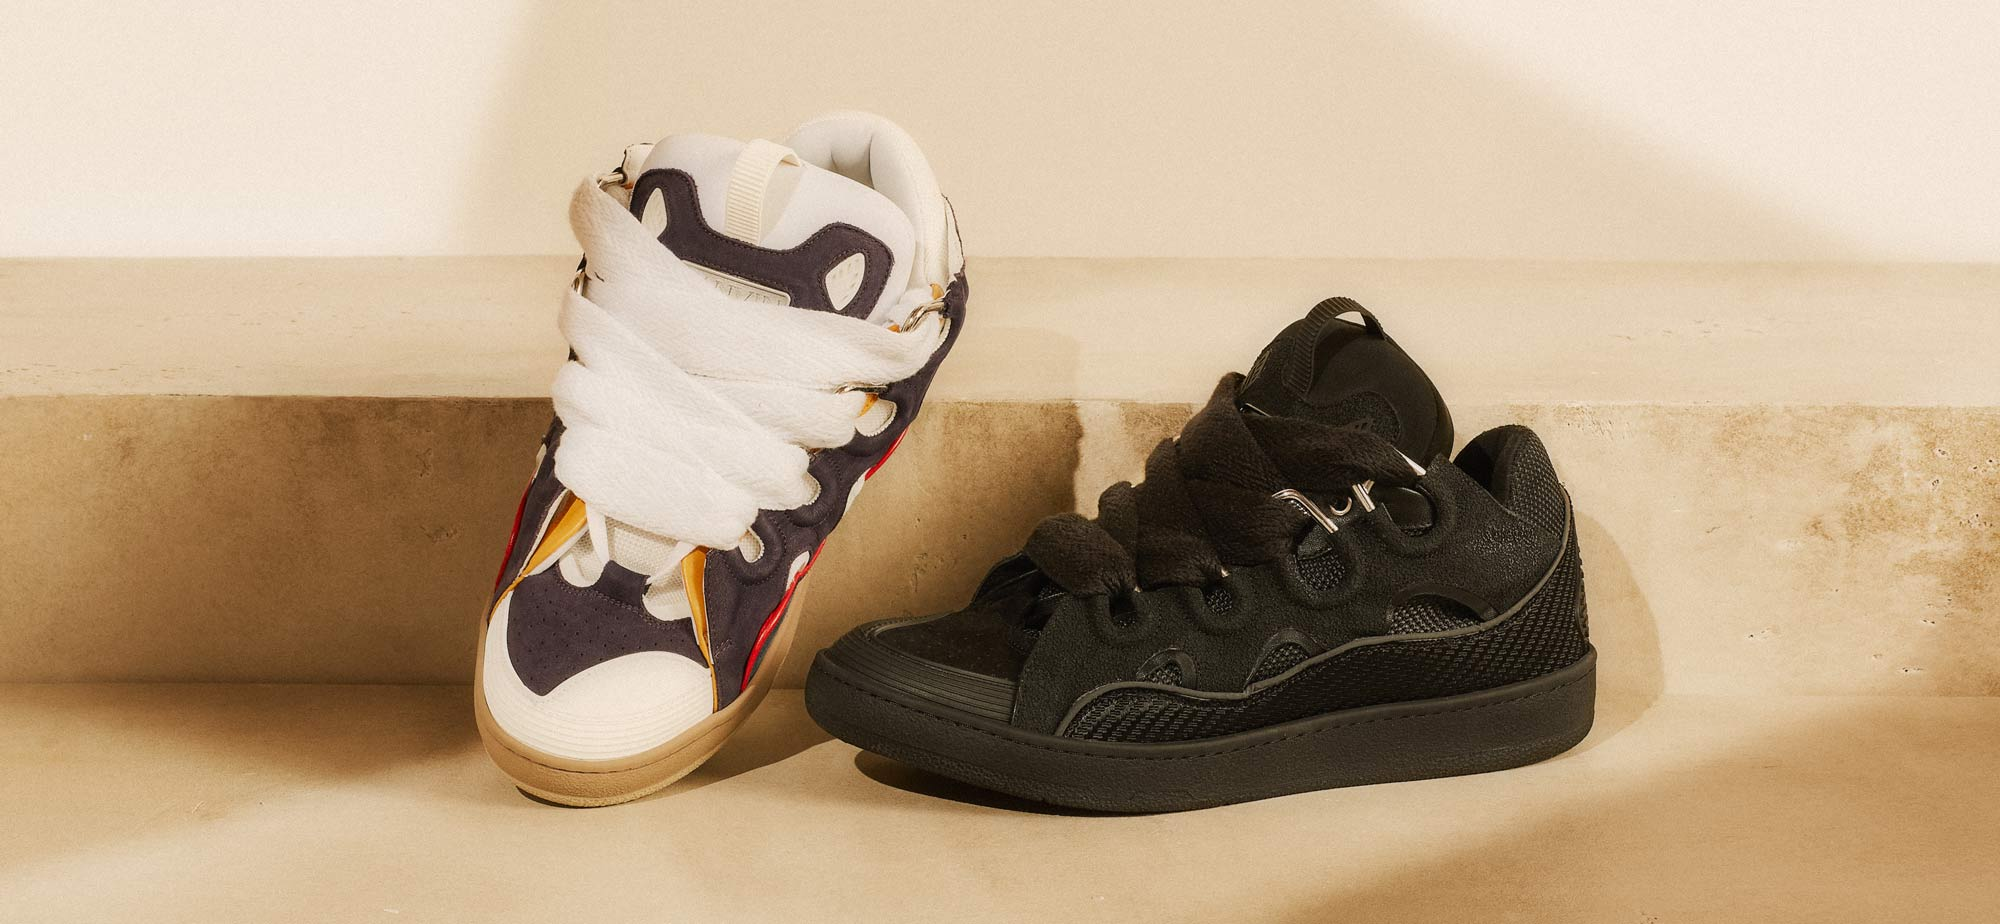 Curb Sneakers Lanvin